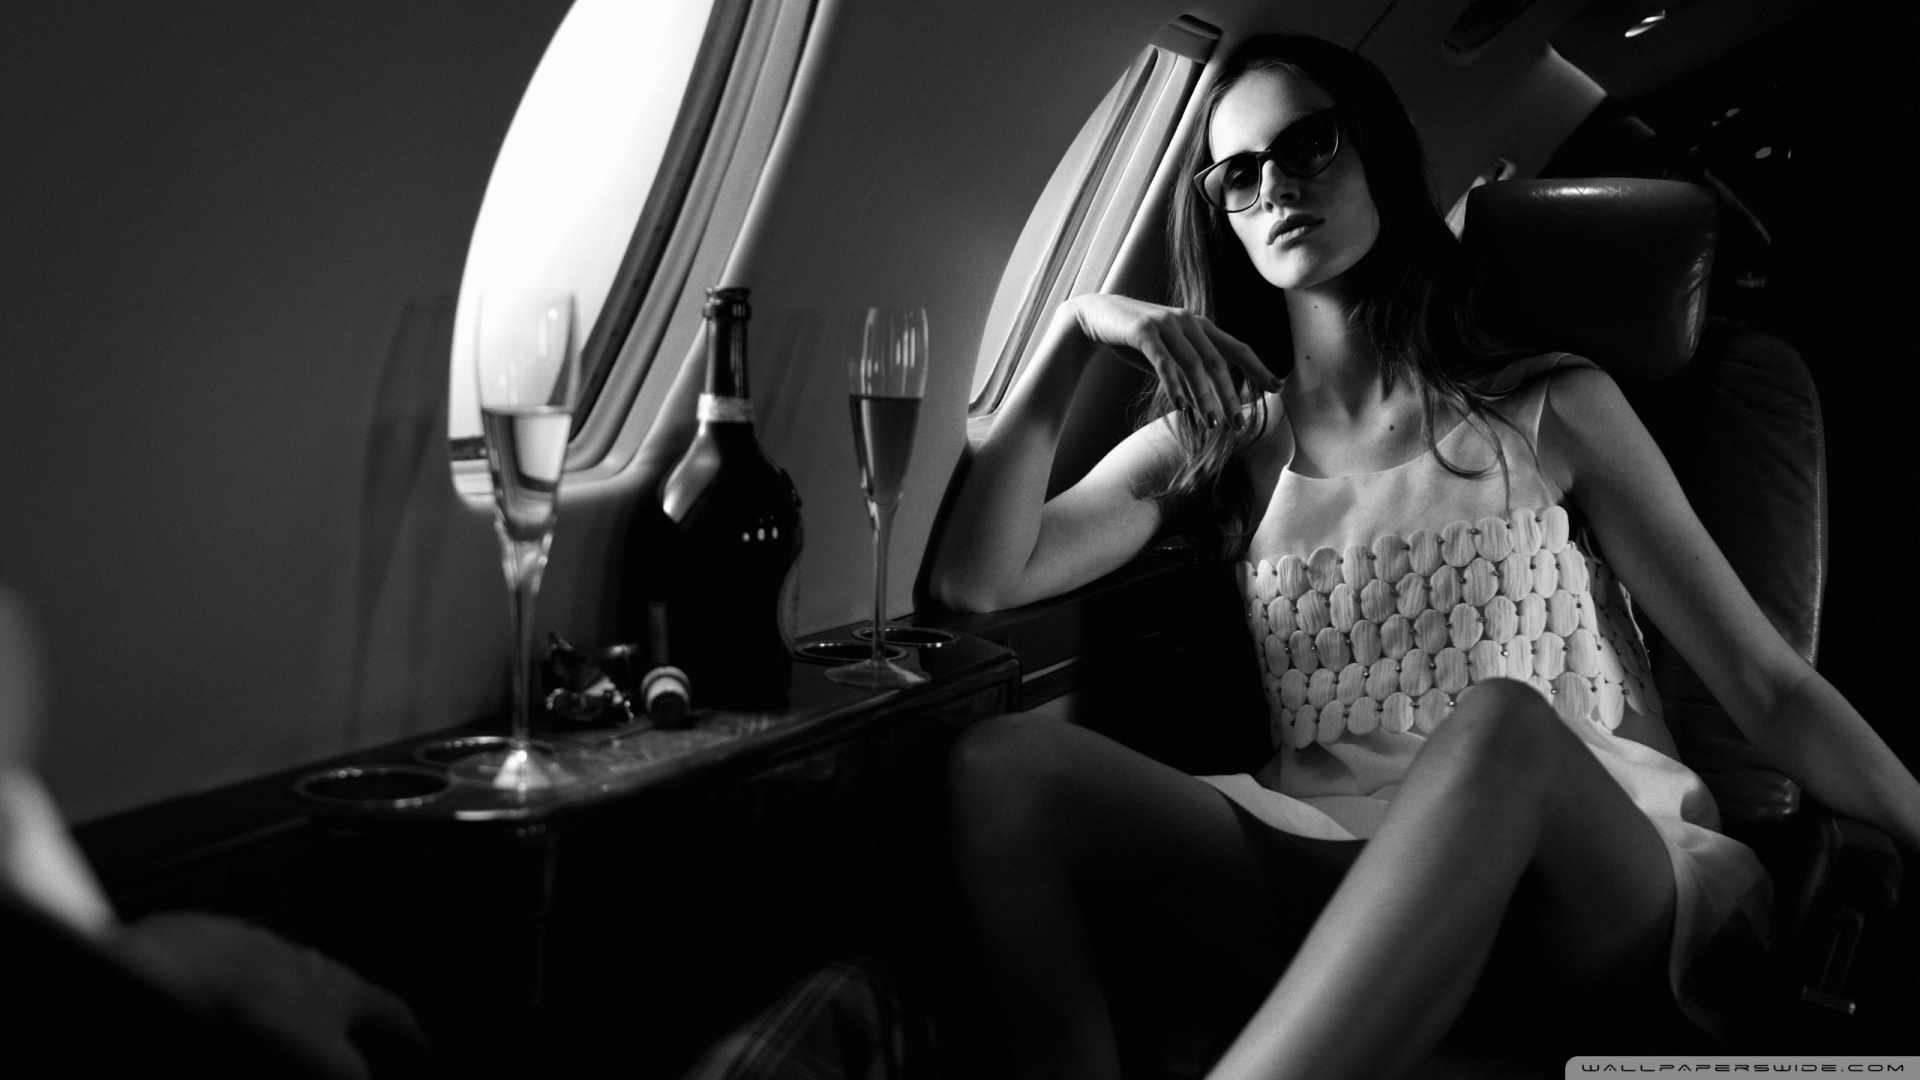 model_in_airplane-wallpaper-1920x1080